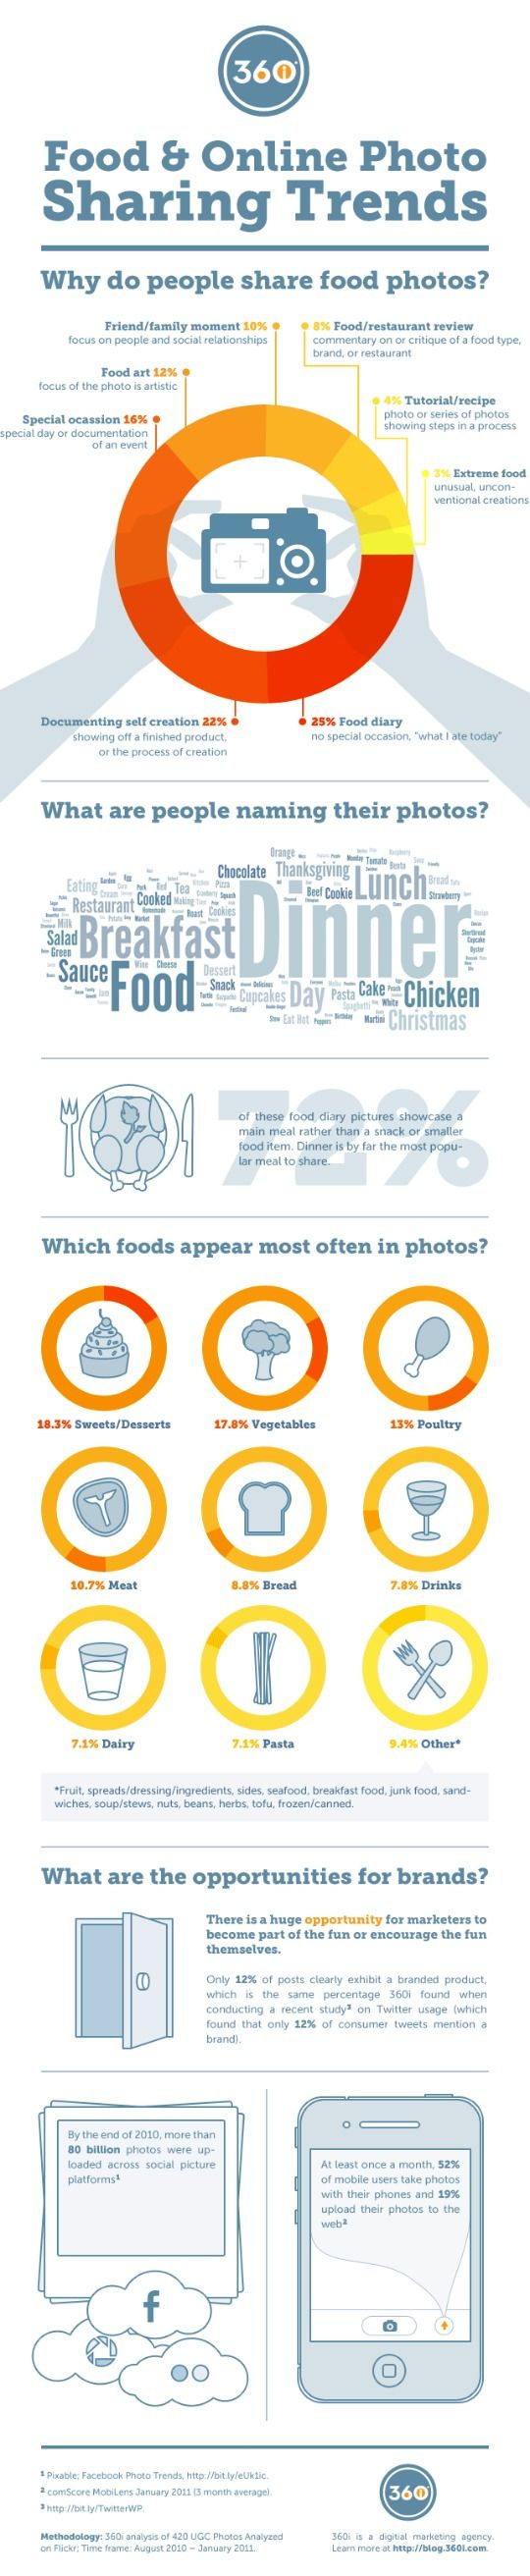 #Food & Online #Photo #Sharing #Trends #Social